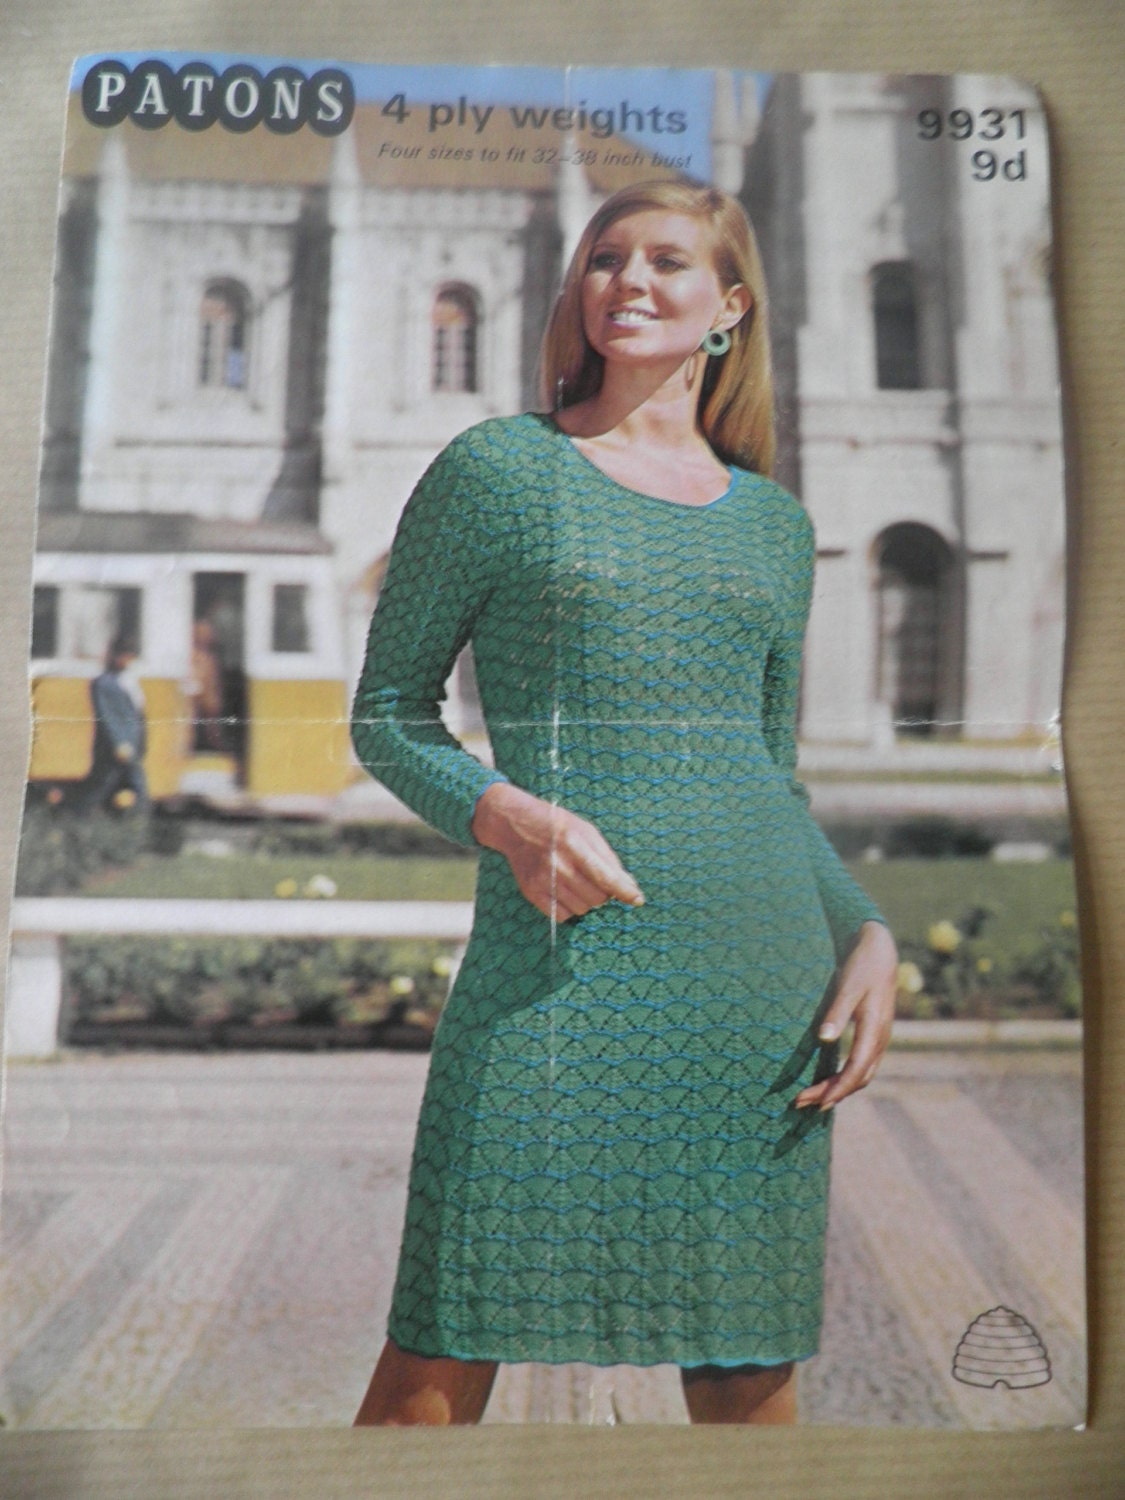 Vintage 1960s lacy knitted dress pattern 4ply patons details a gorgeous original 1960s dress pattern bankloansurffo Image collections